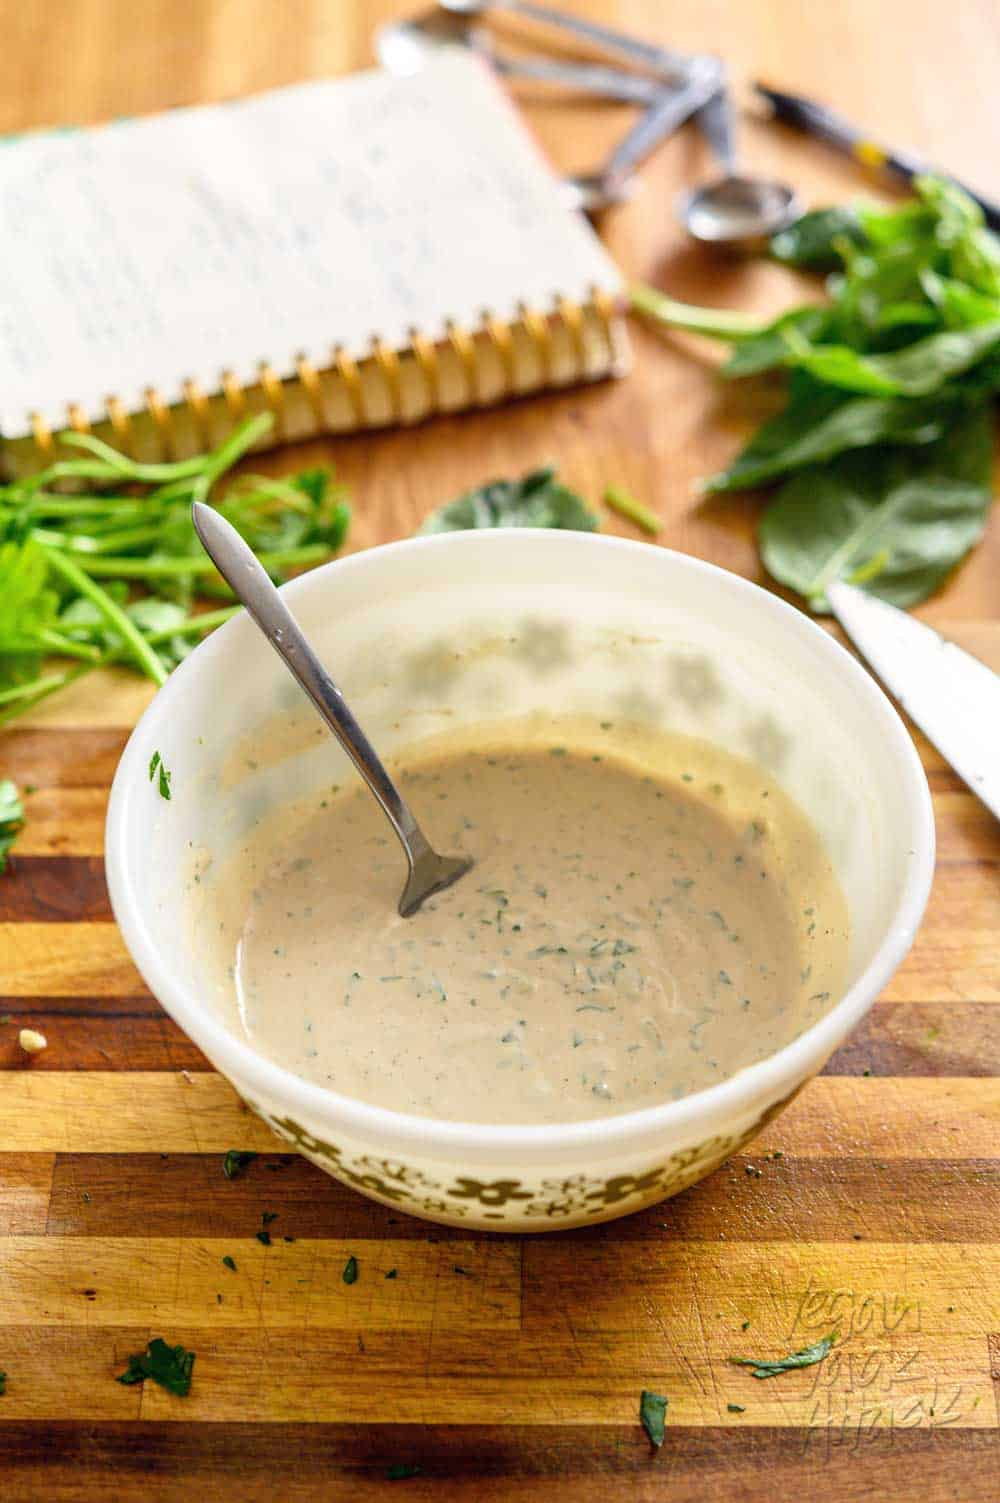 Image of mixing bowl filled with herbed tahini sauce on a cutting board